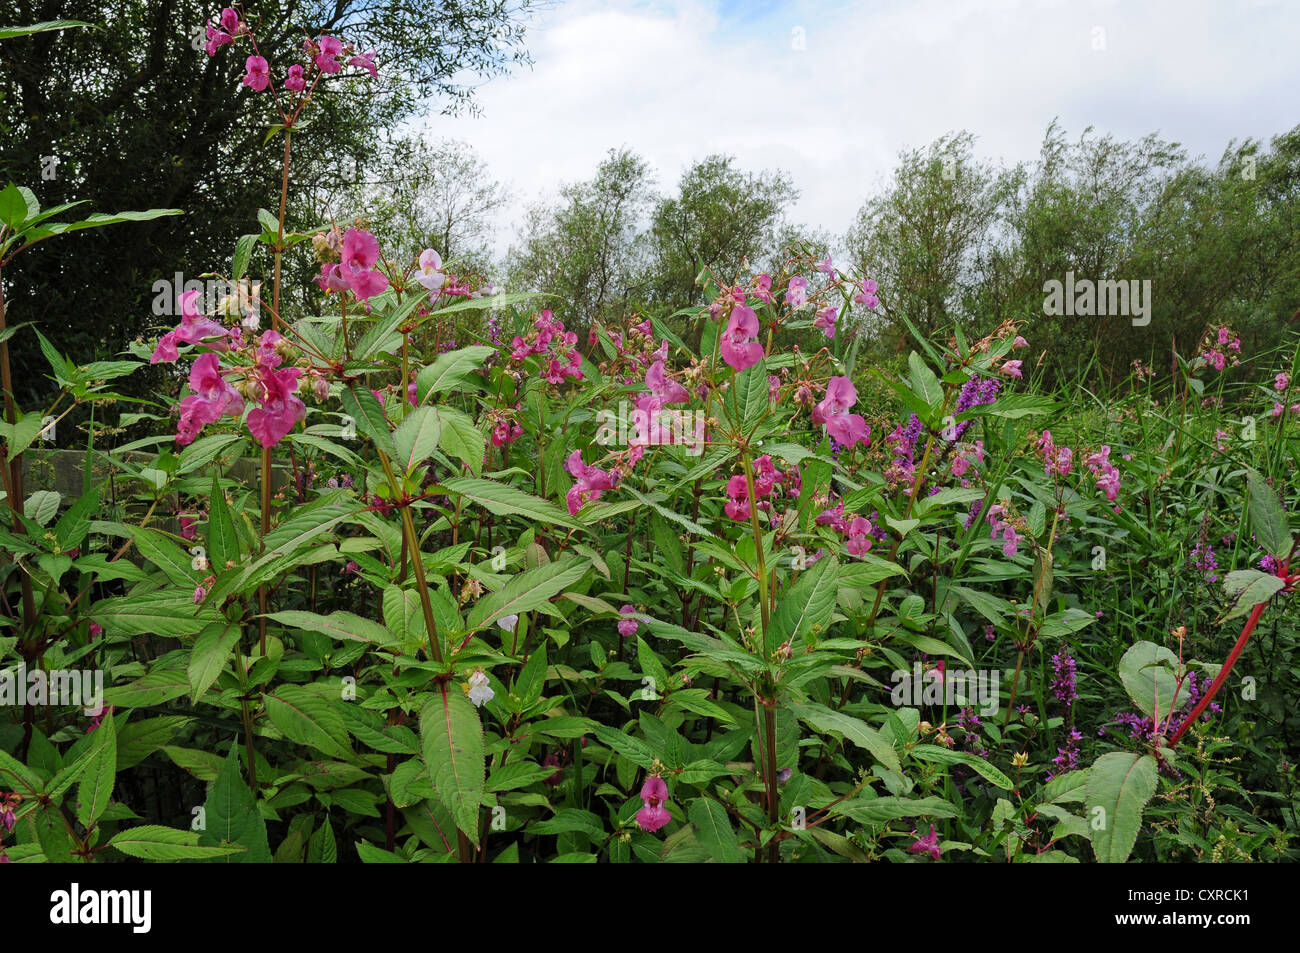 Himalayan balsam Impatiens glandulifera  growing on the banks of the River Arun. - Stock Image